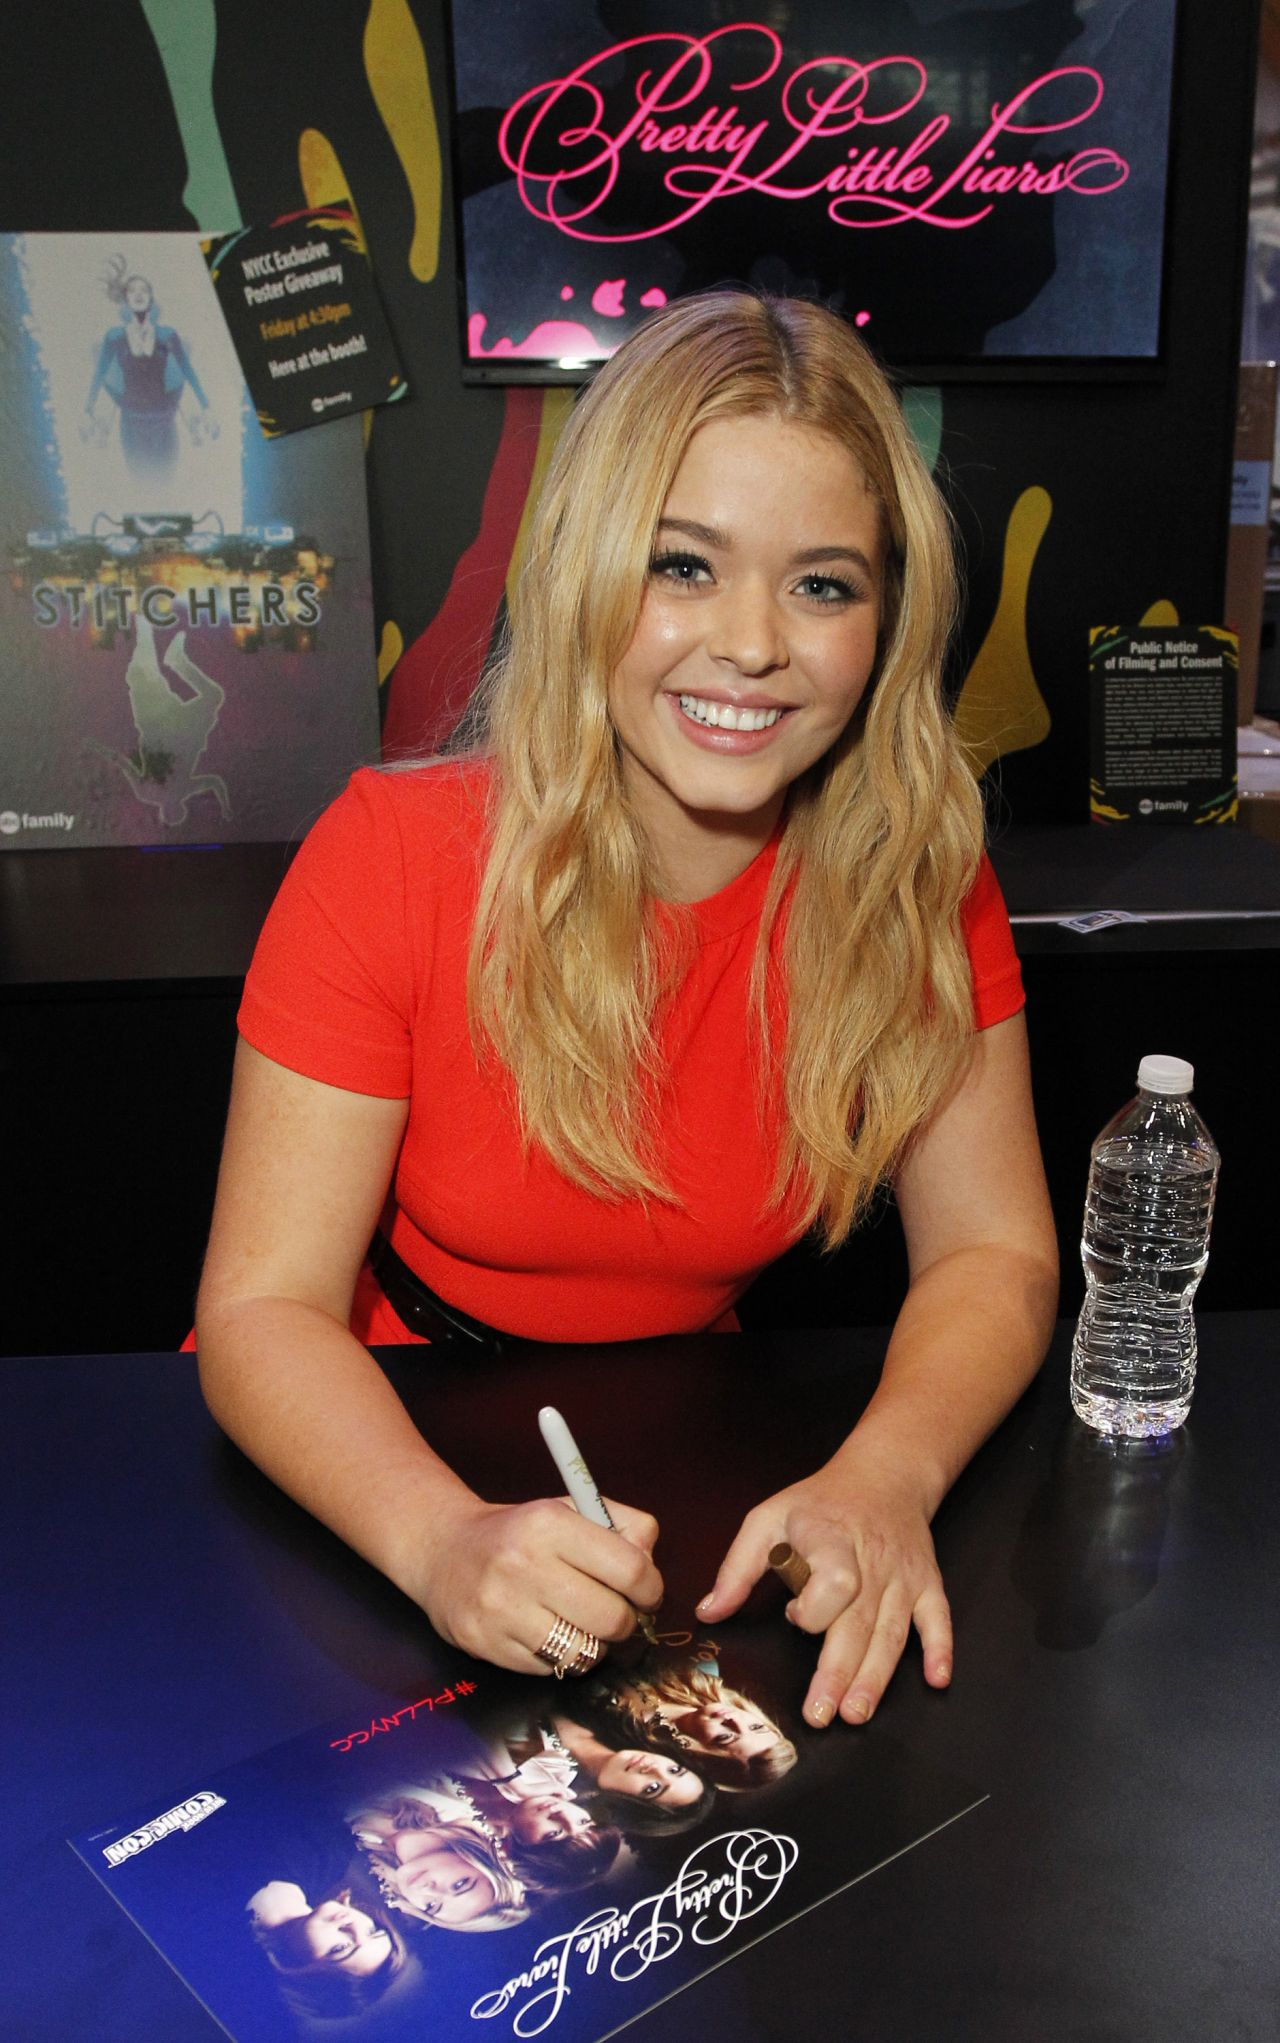 ¿Cuánto mide Sasha Pieterse? - Real height Sasha-pieterse-pretty-little-liars-panel-and-signing-at-new-york-comic-con-2015_3